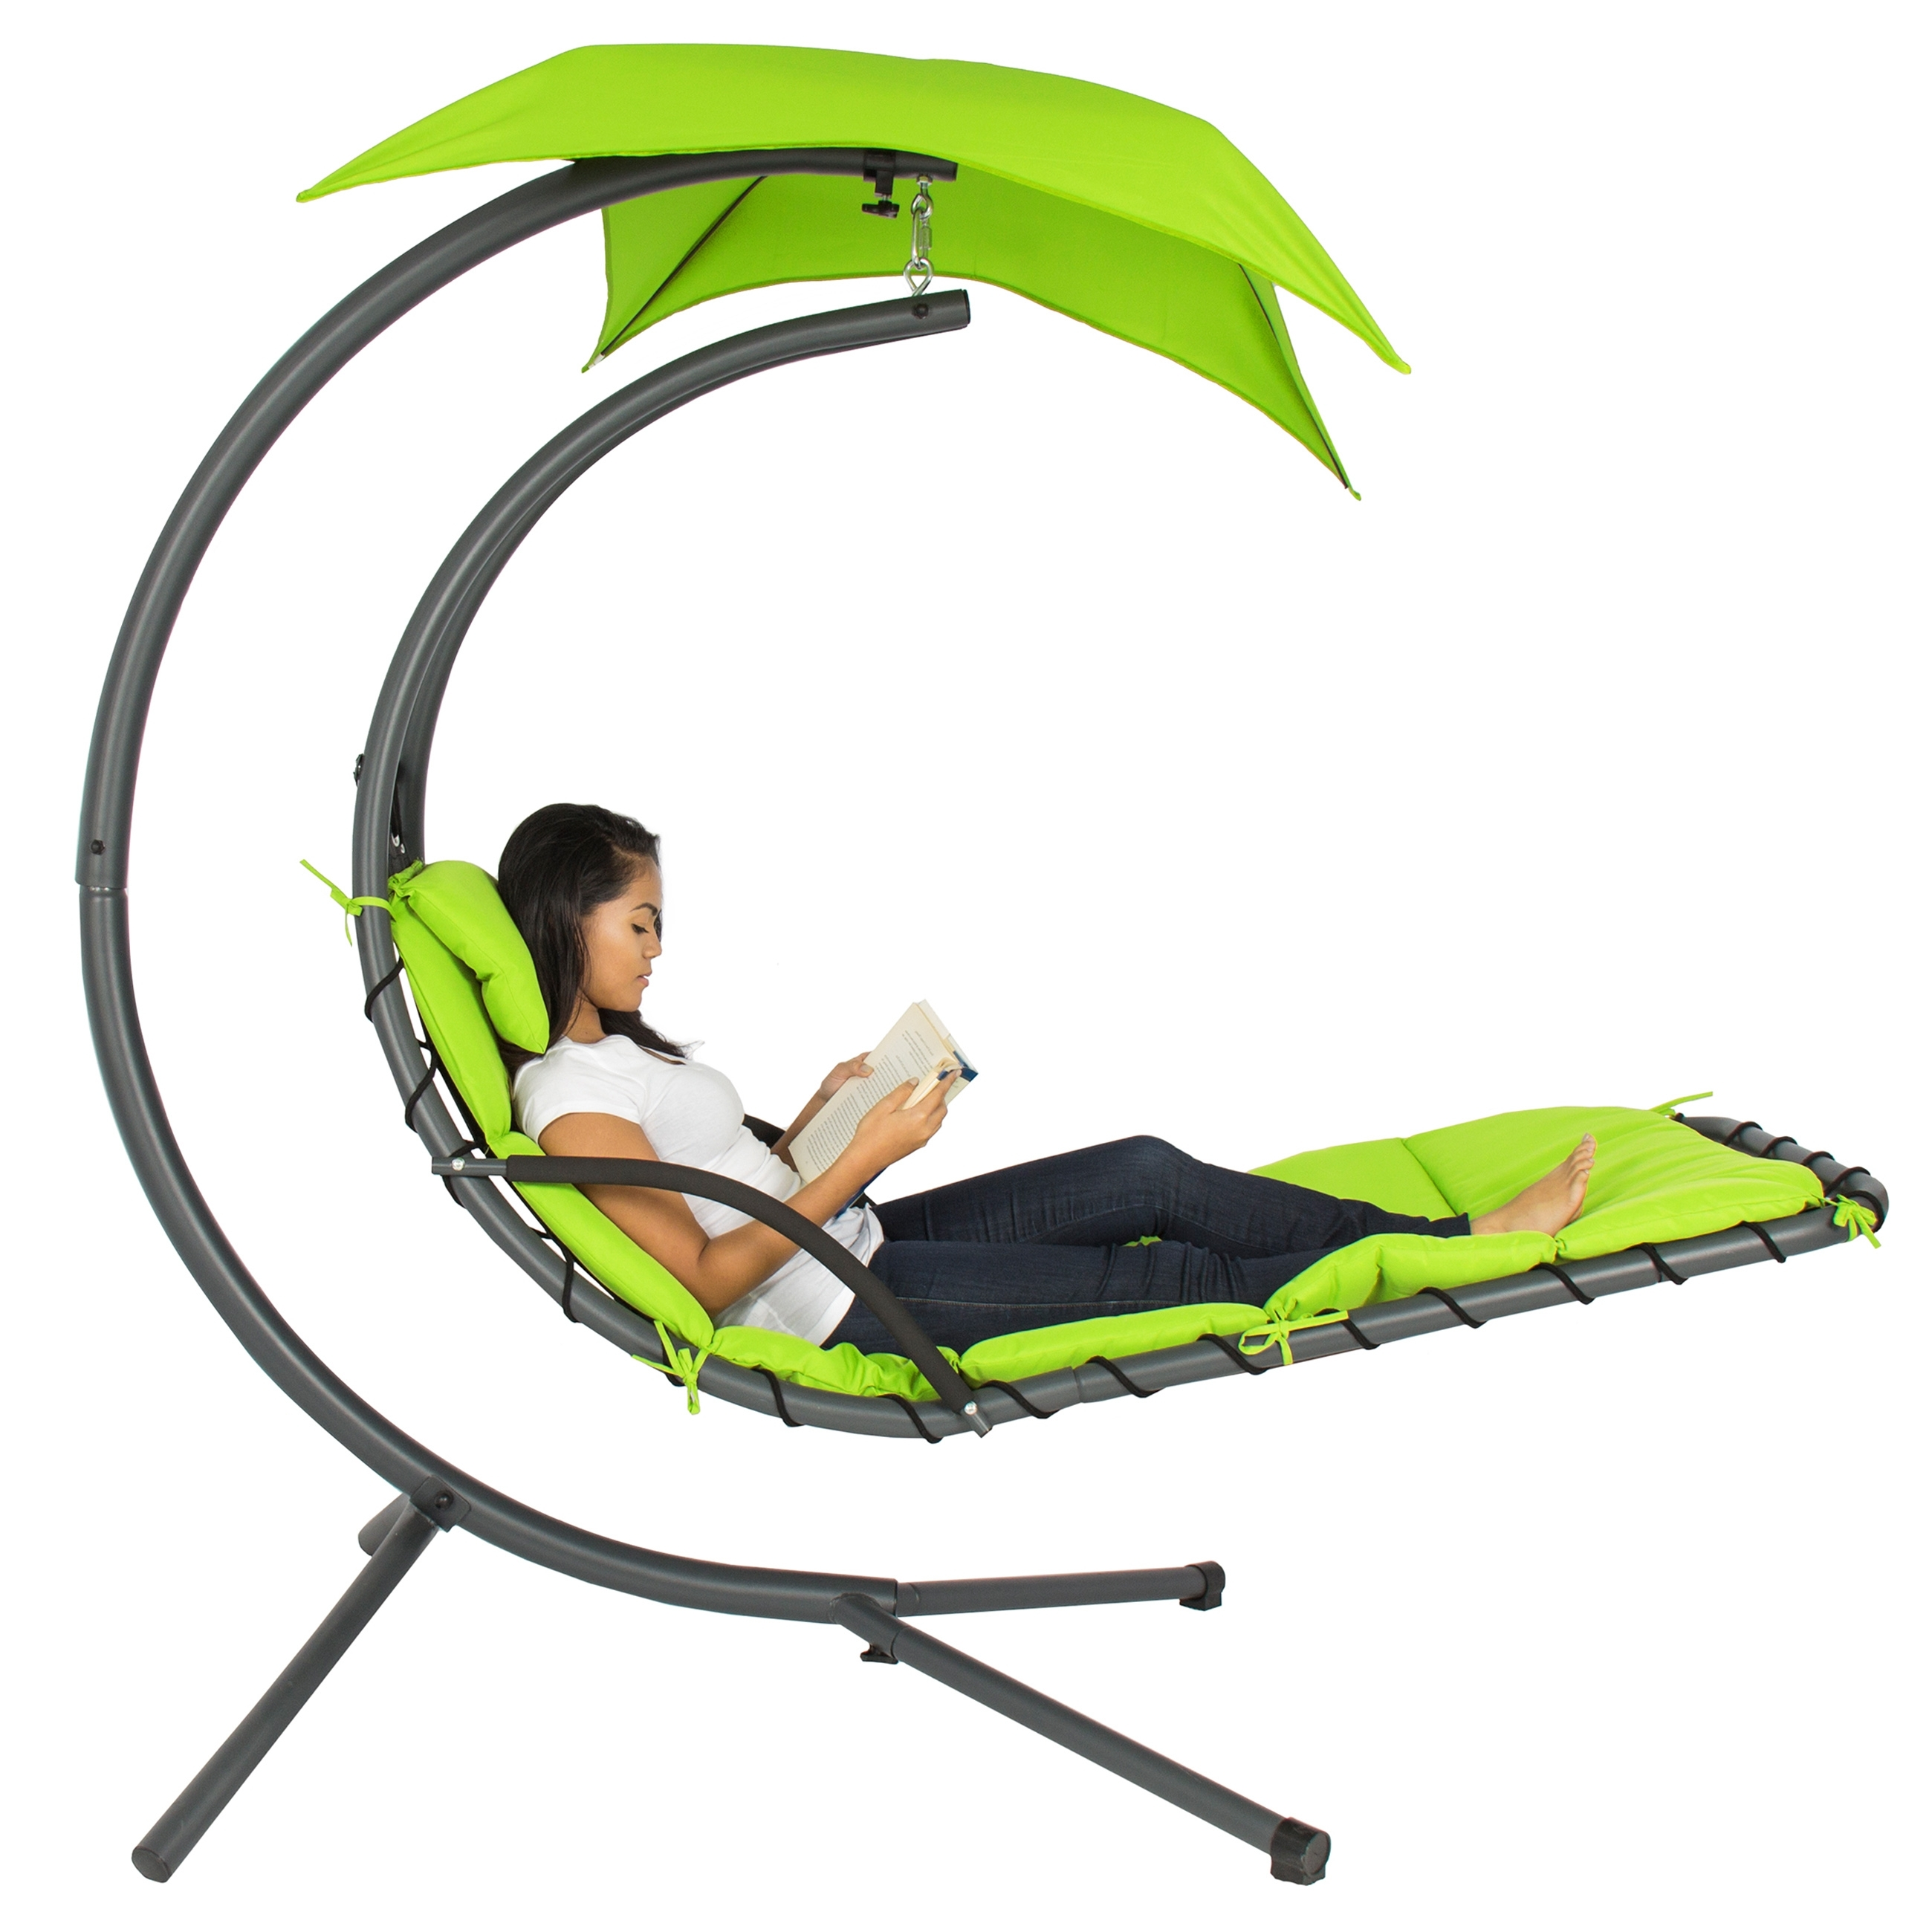 Well Liked Hanging Chaise Lounge Chairs For Best Choice Products Hanging Chaise Lounger Chair Arc Stand Air (View 15 of 15)